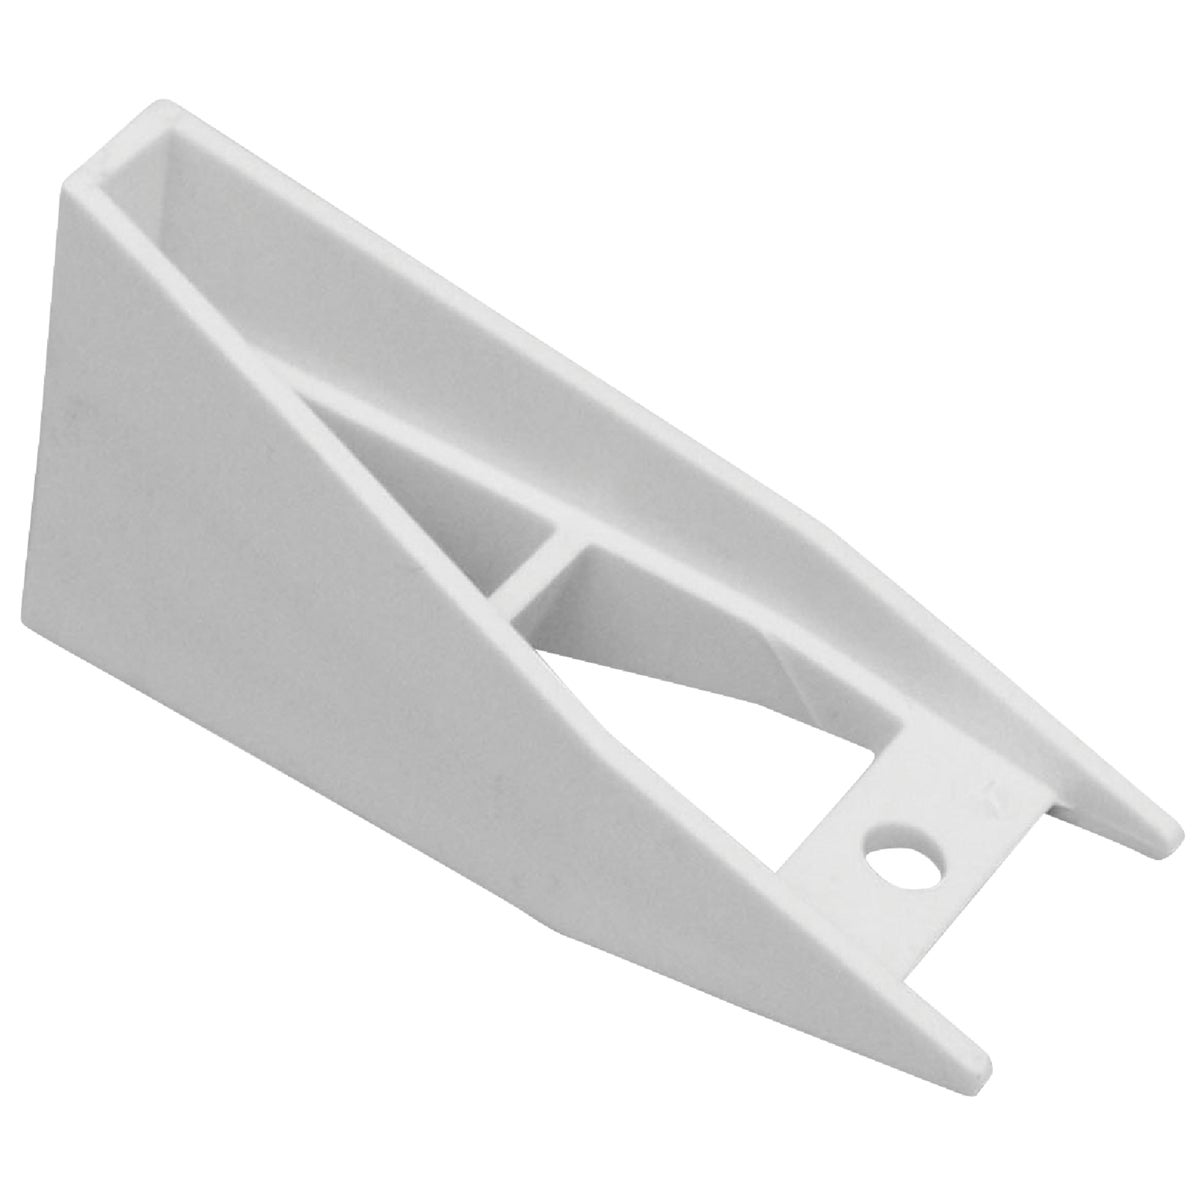 WHT SPACER BRACKET - RW112 by Genova Products